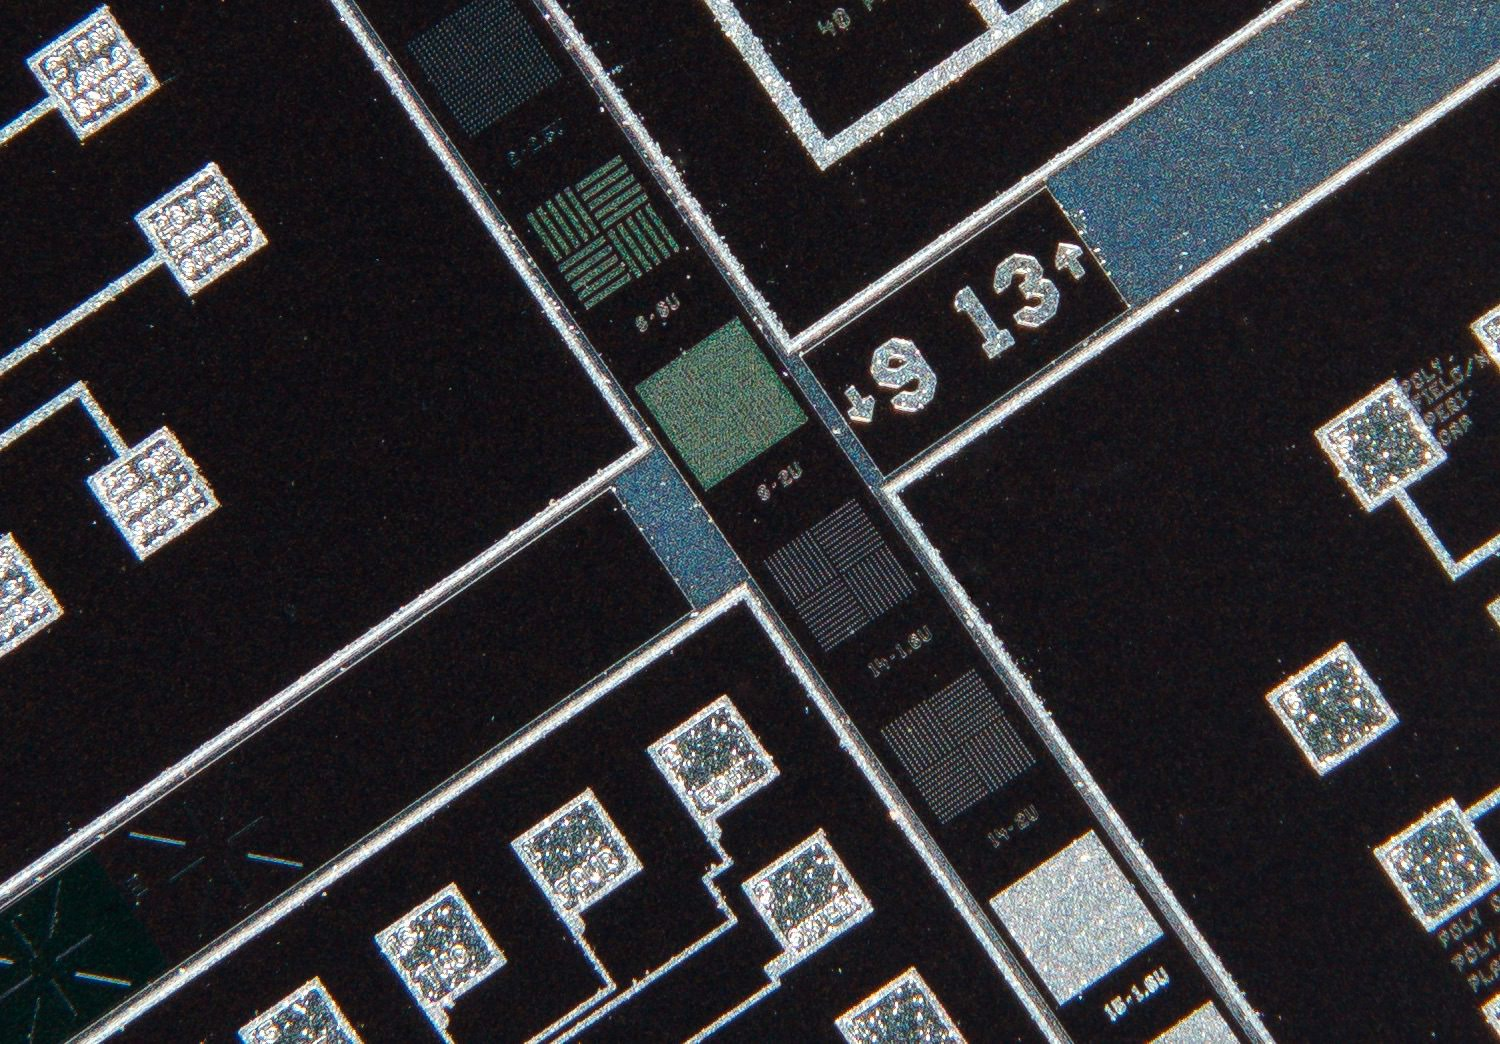 Nikon CF Plan APO 4x/0.16 160/- Finite Microscope Objective 100% actual pixel view center crop. Clicking on an image will open a larger version.